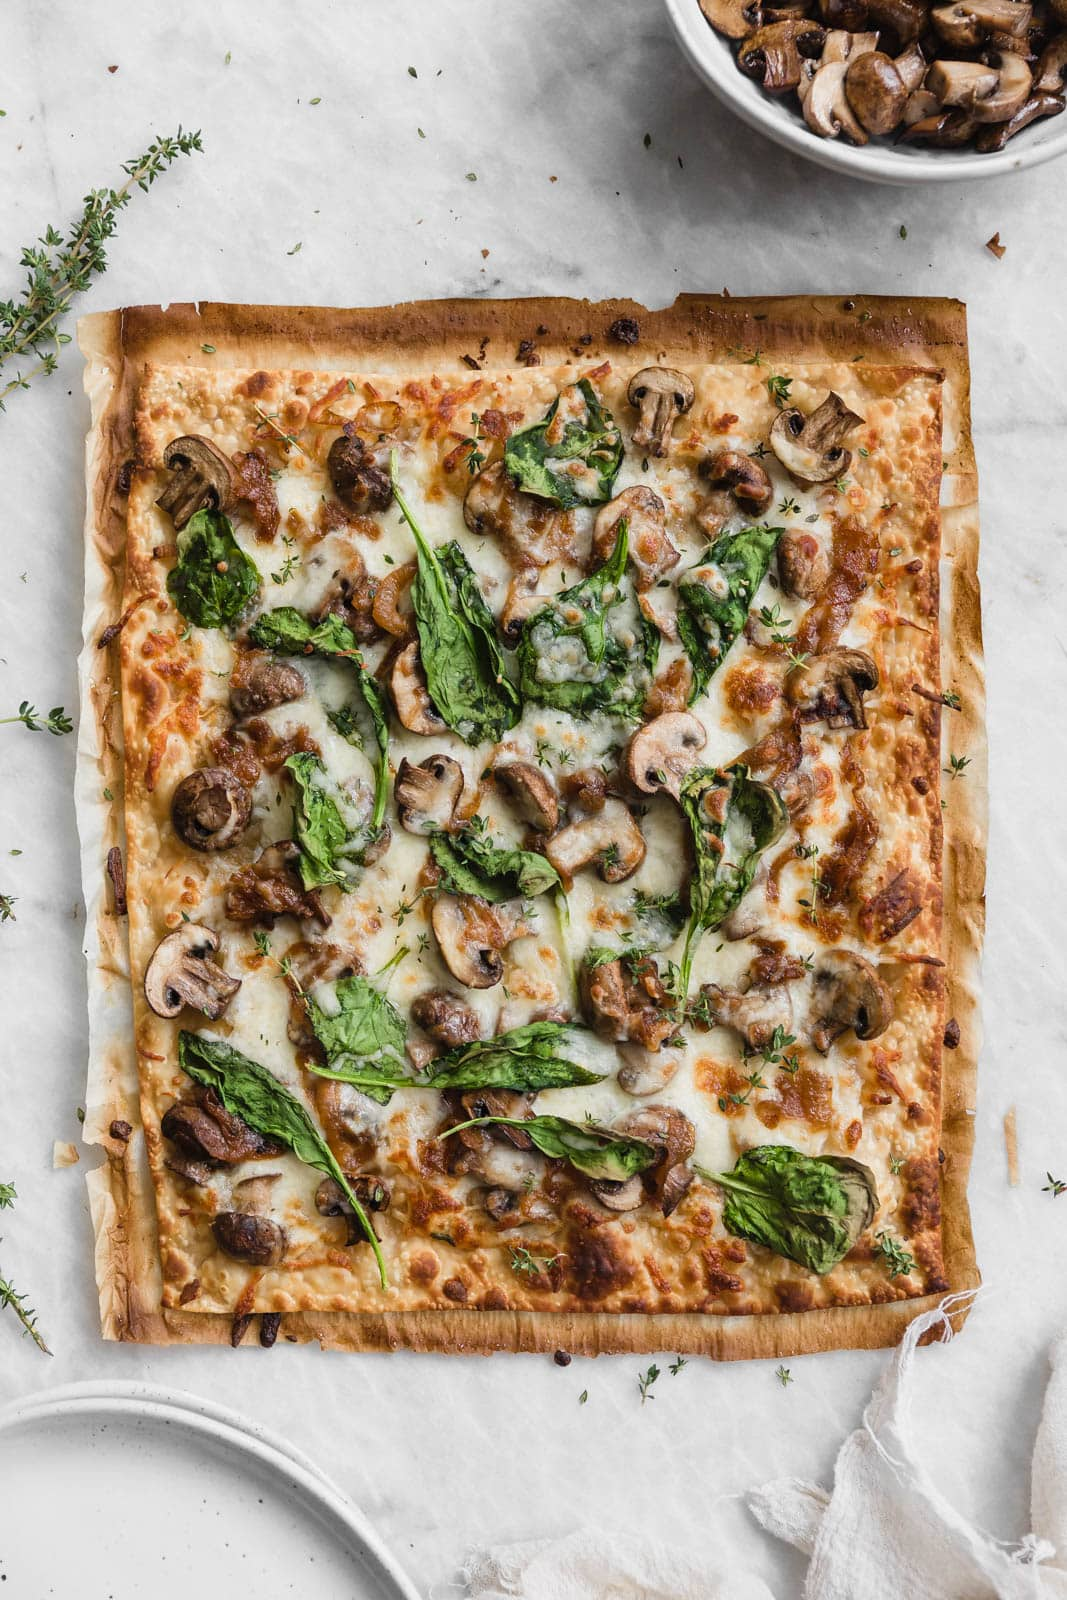 Caramelized Onion, Mushroom, & Spinach Pizza